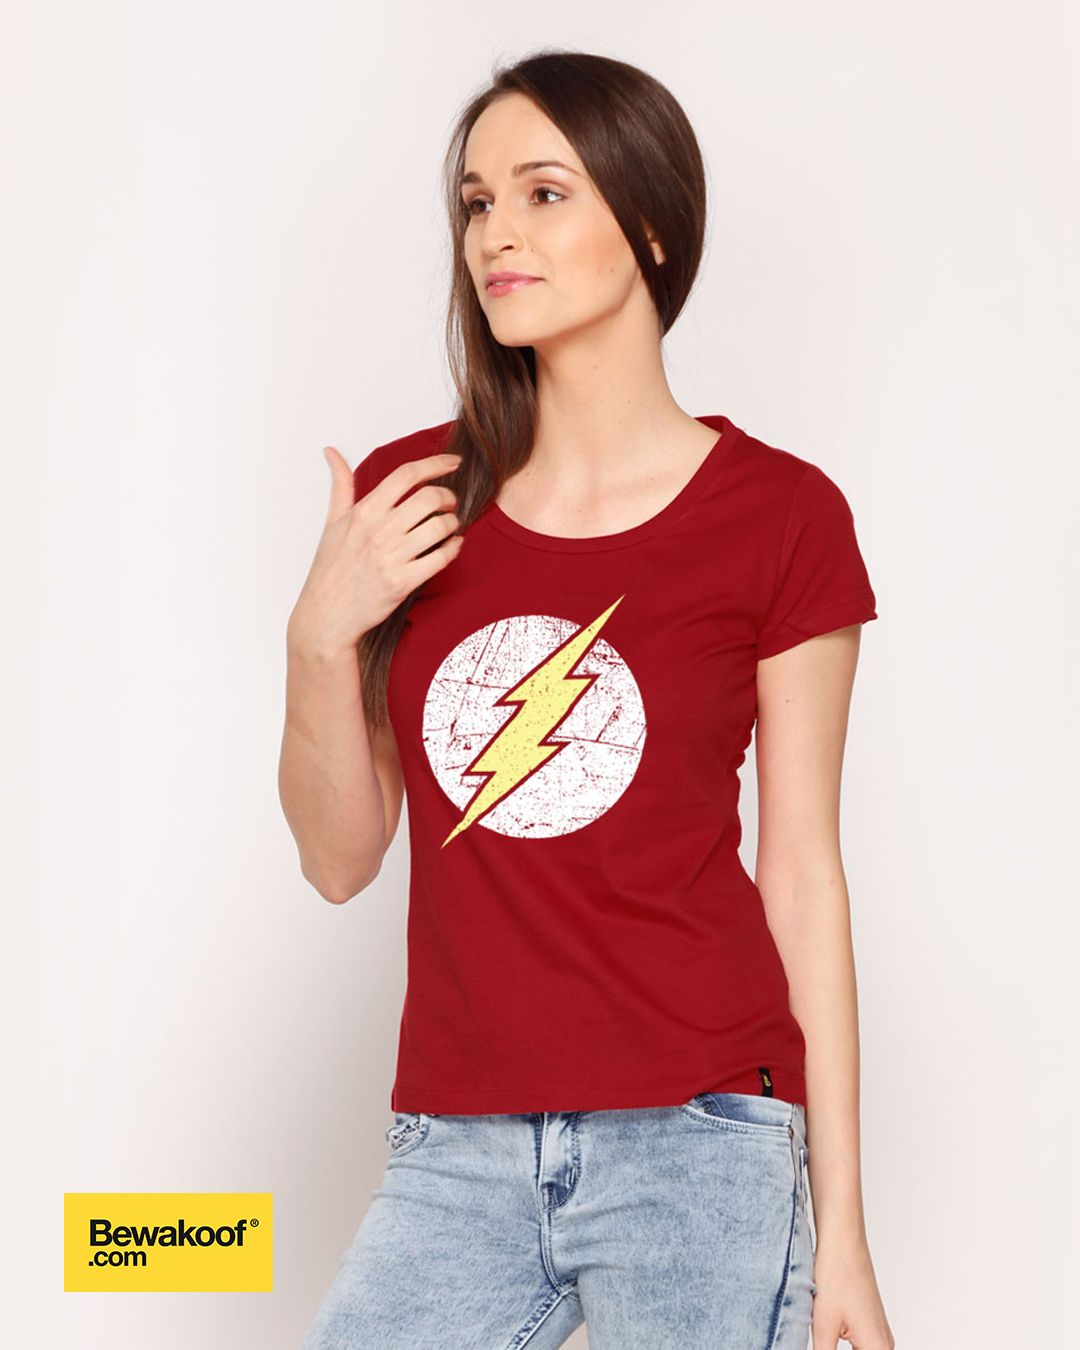 Bewakoof - Flash Logo T-Shirt (DCL) INR 425 at Bewakoof.com ...